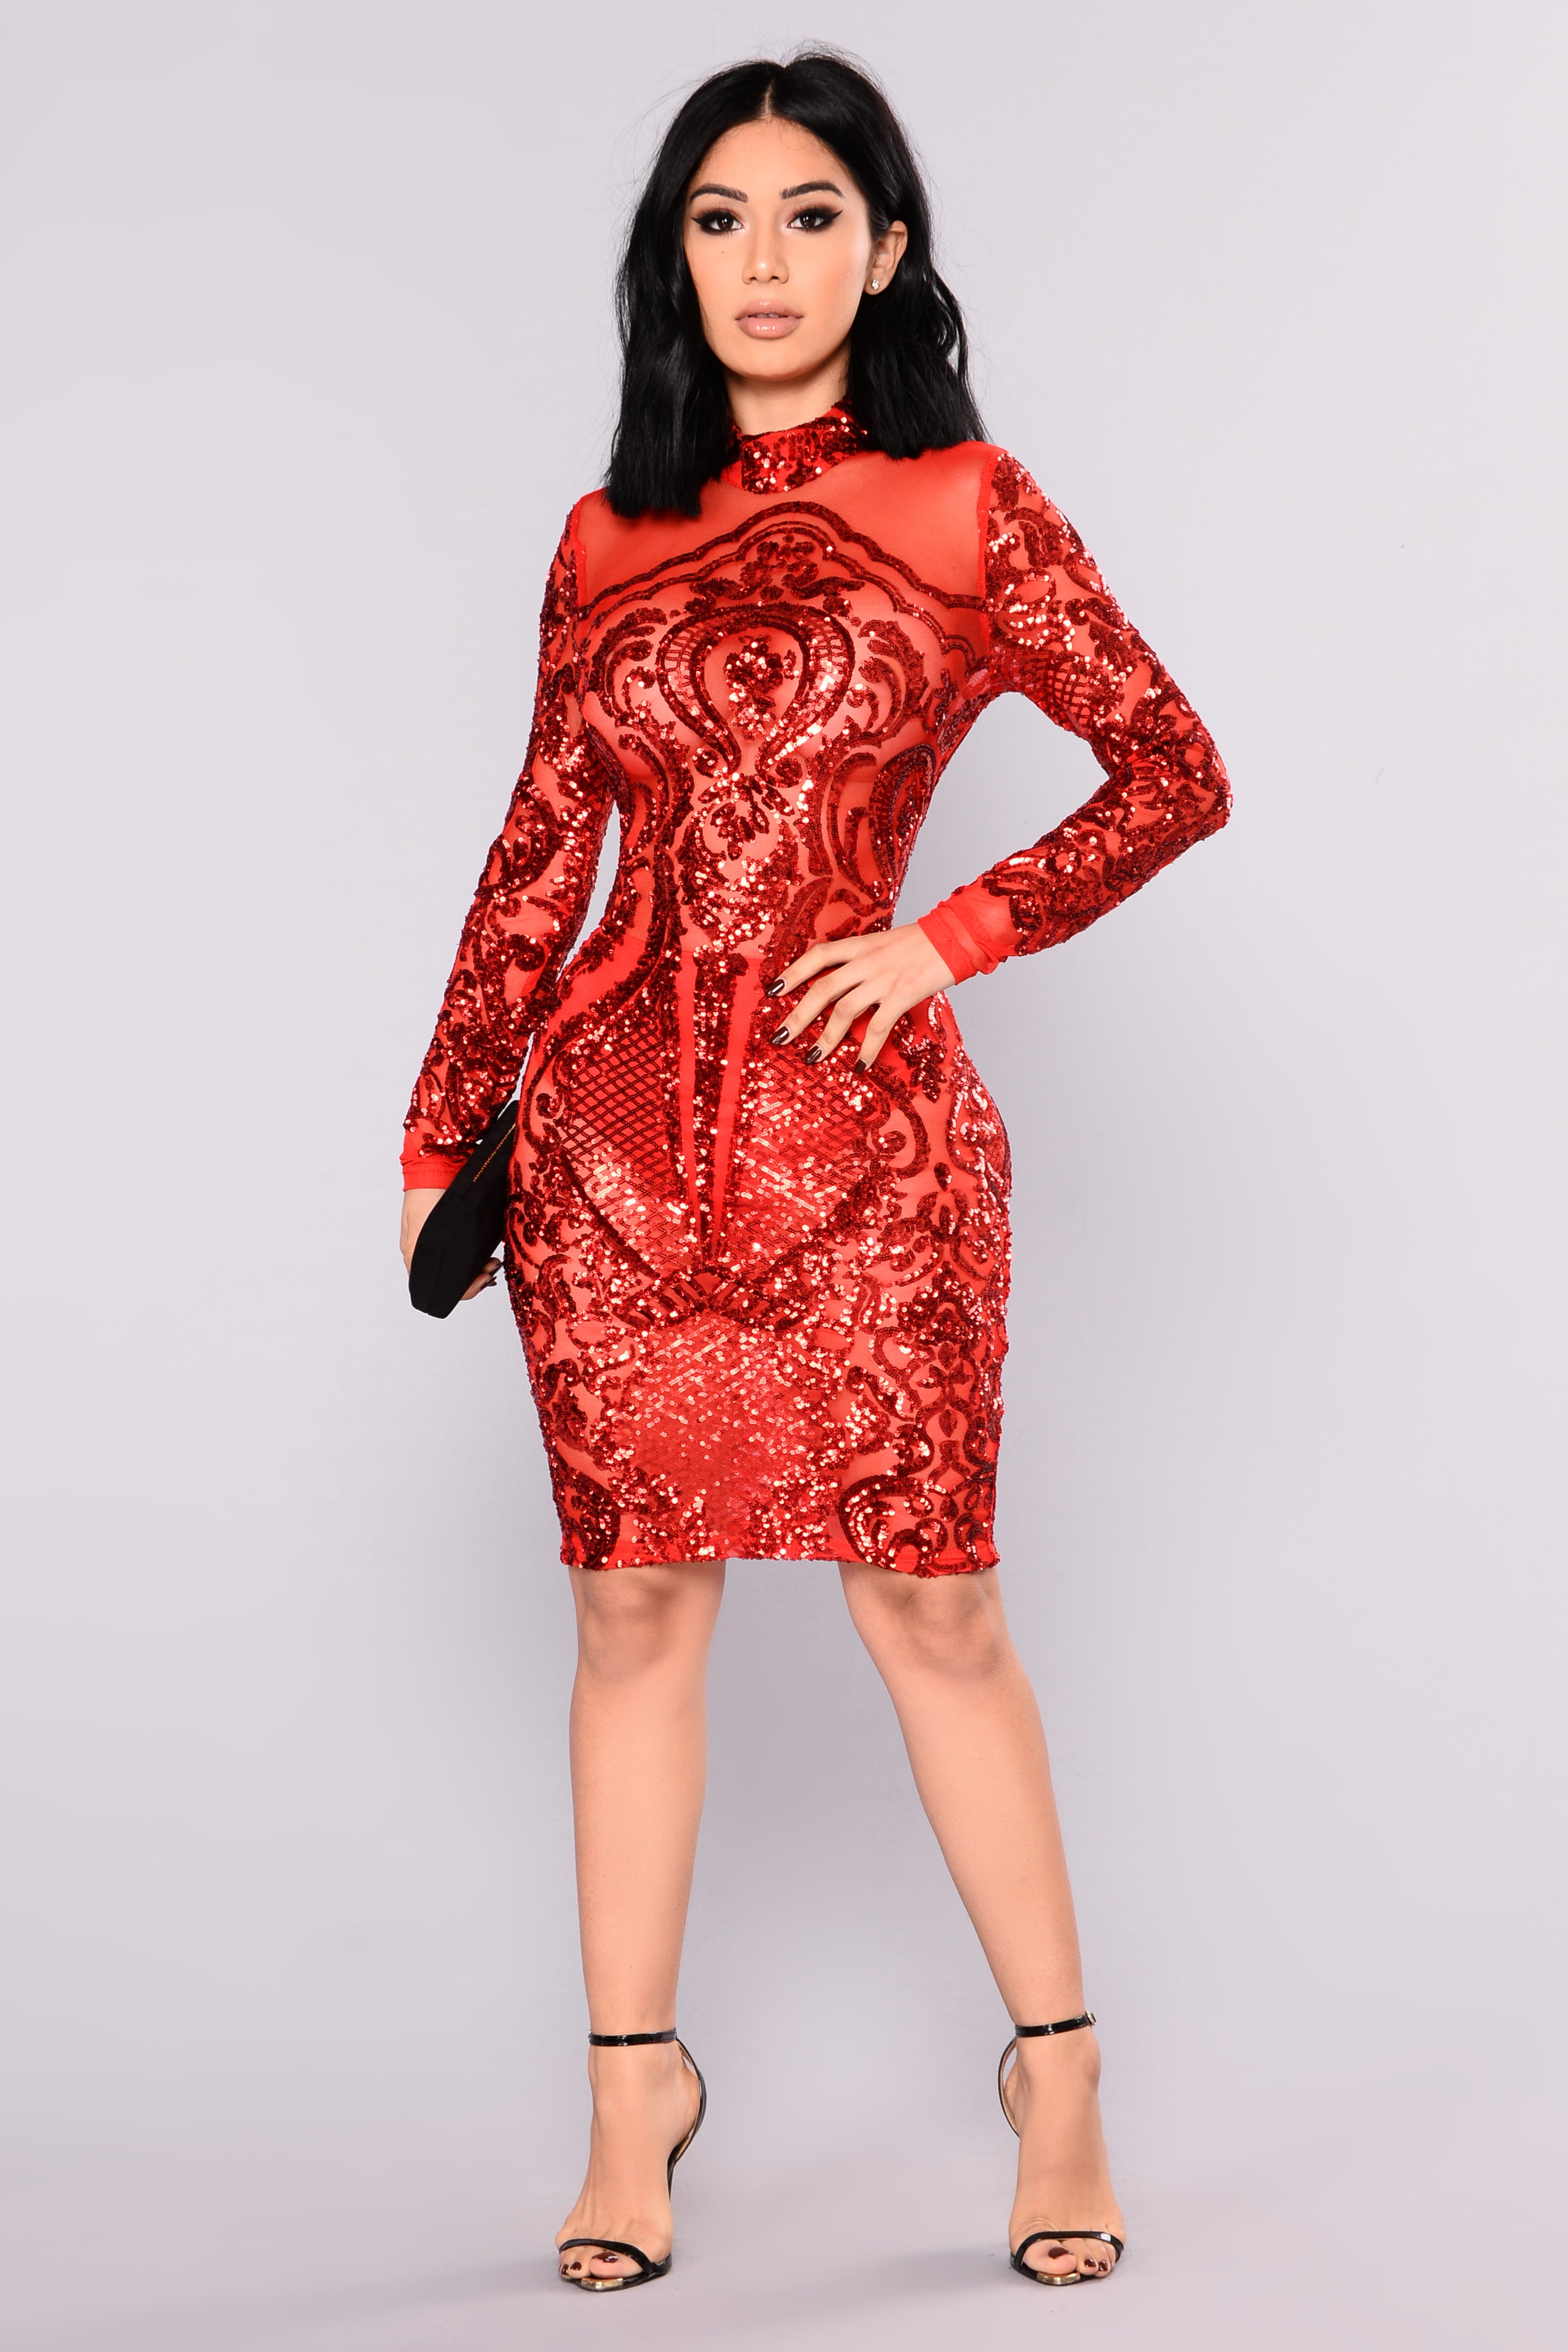 Calcy Sequin Mesh Dress - Red